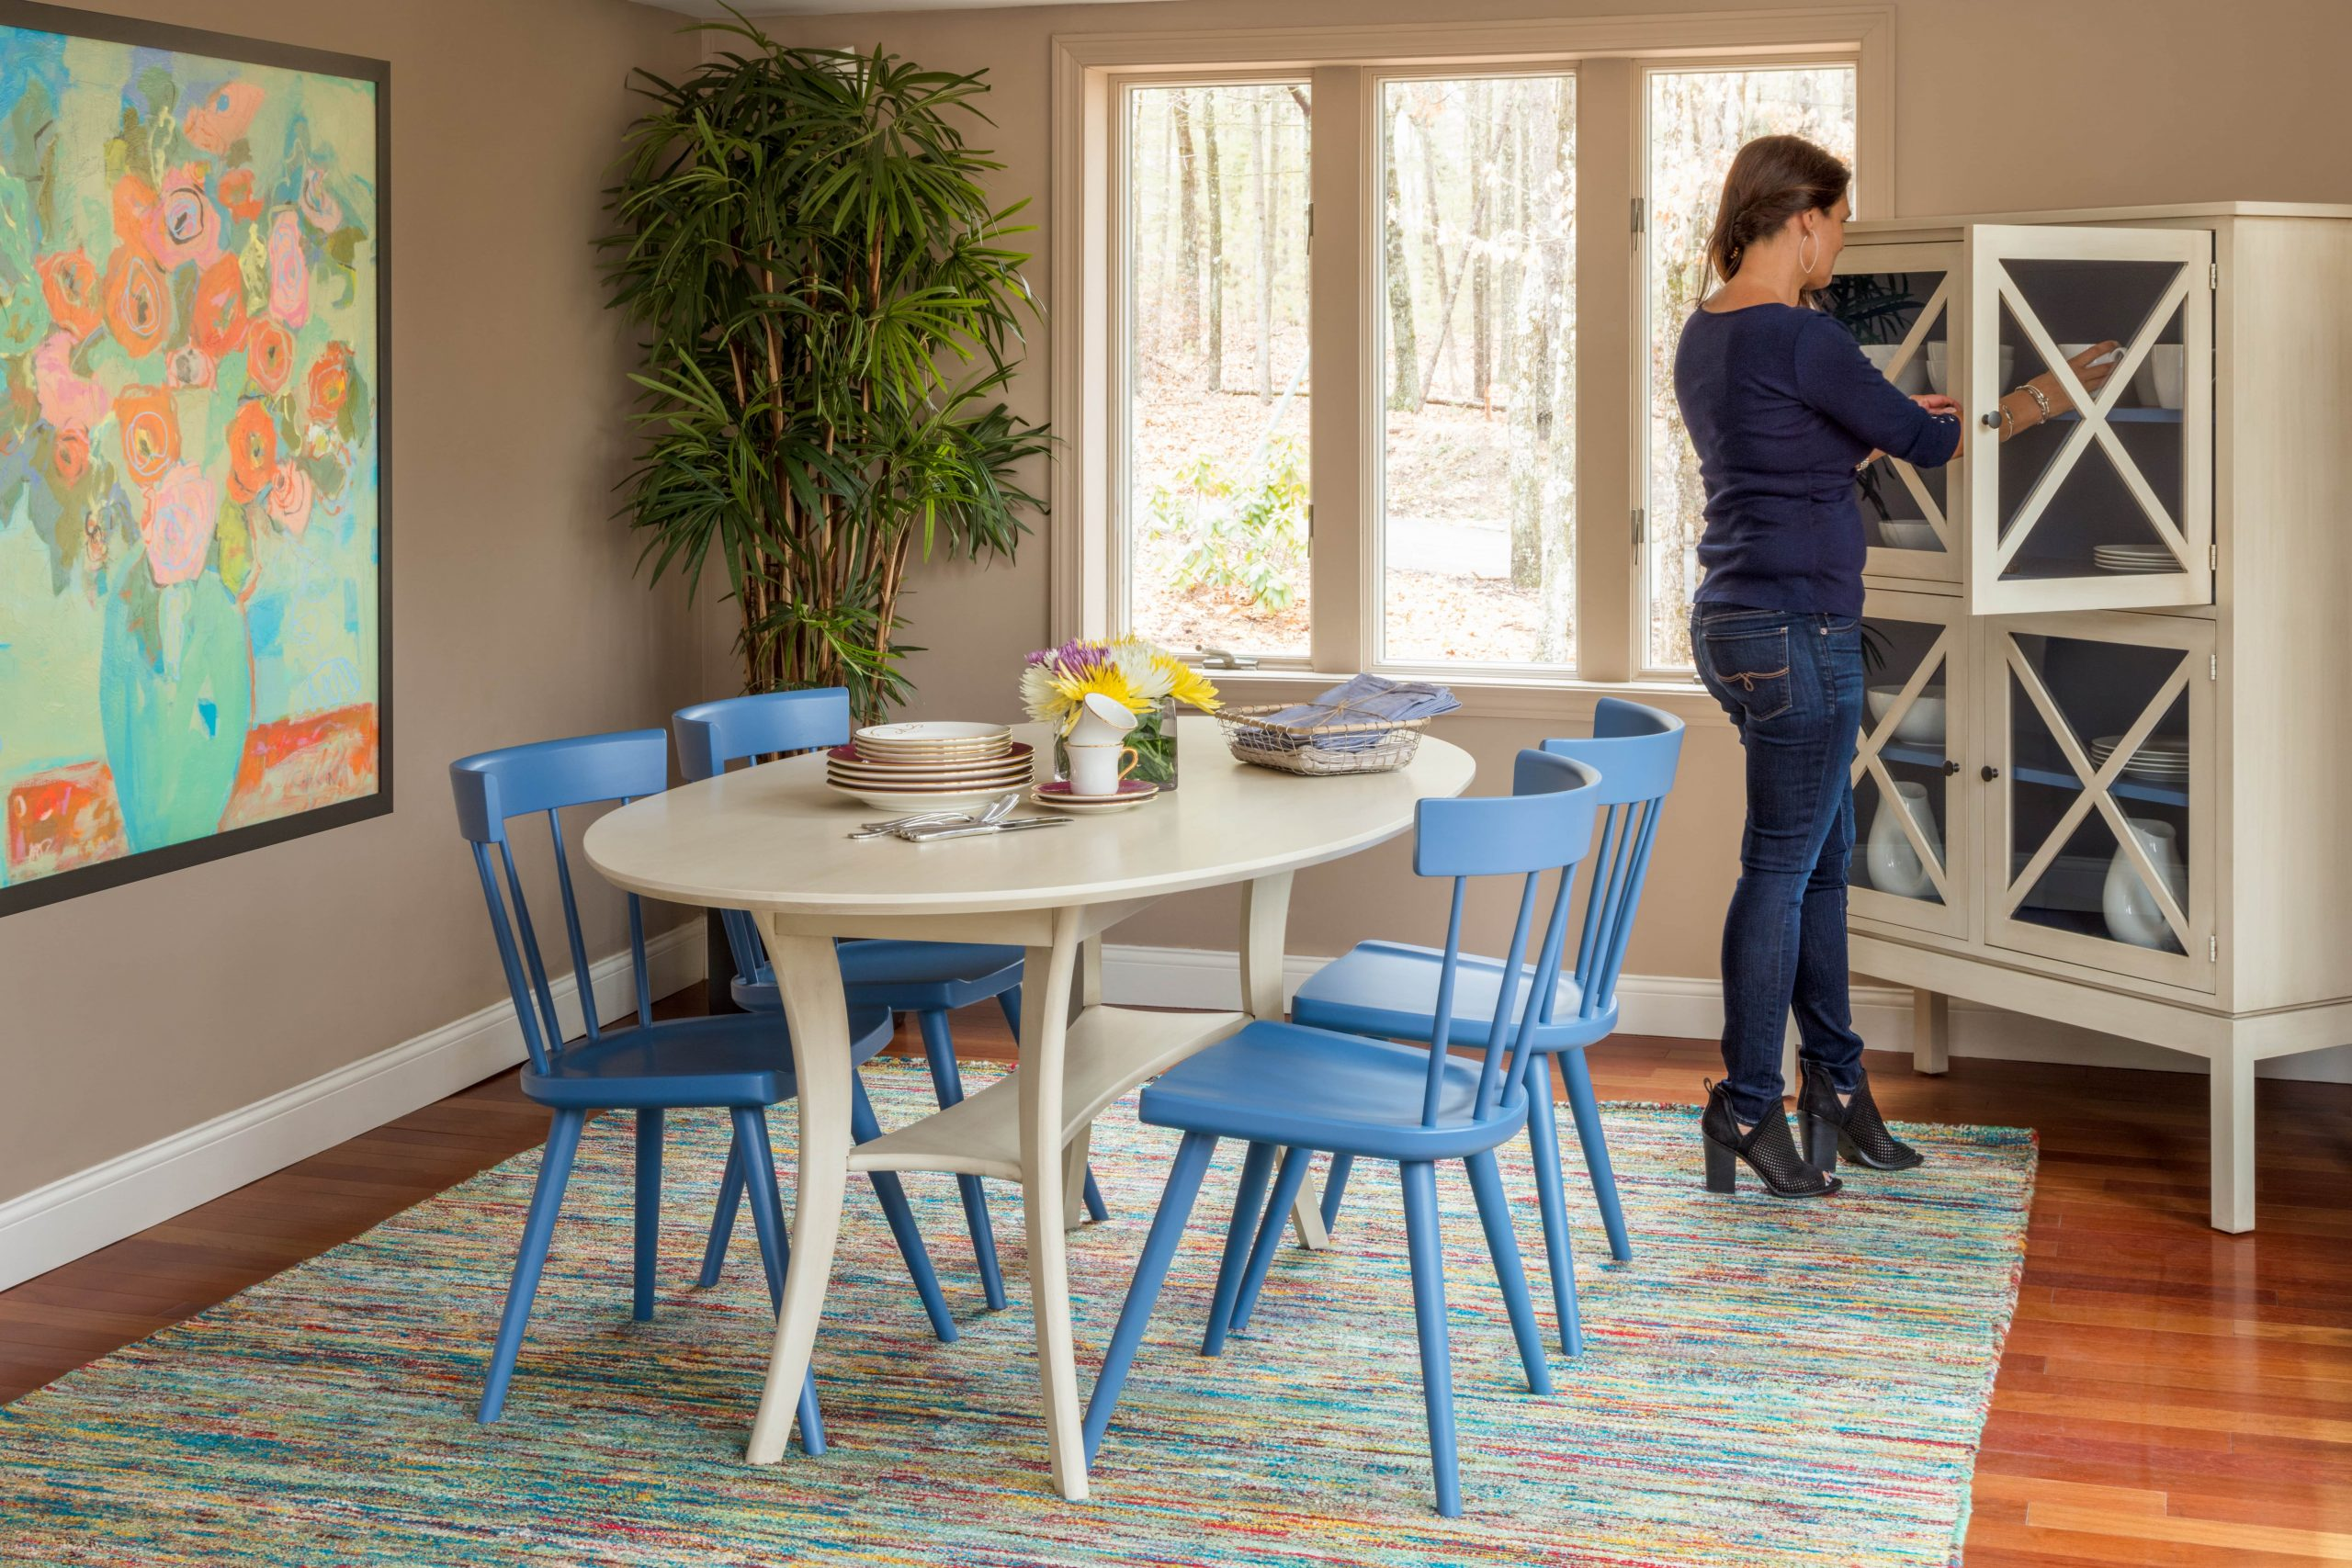 Circle Furniture - How to Update a Traditional Dining Room - Dining Room Replacement Ideas